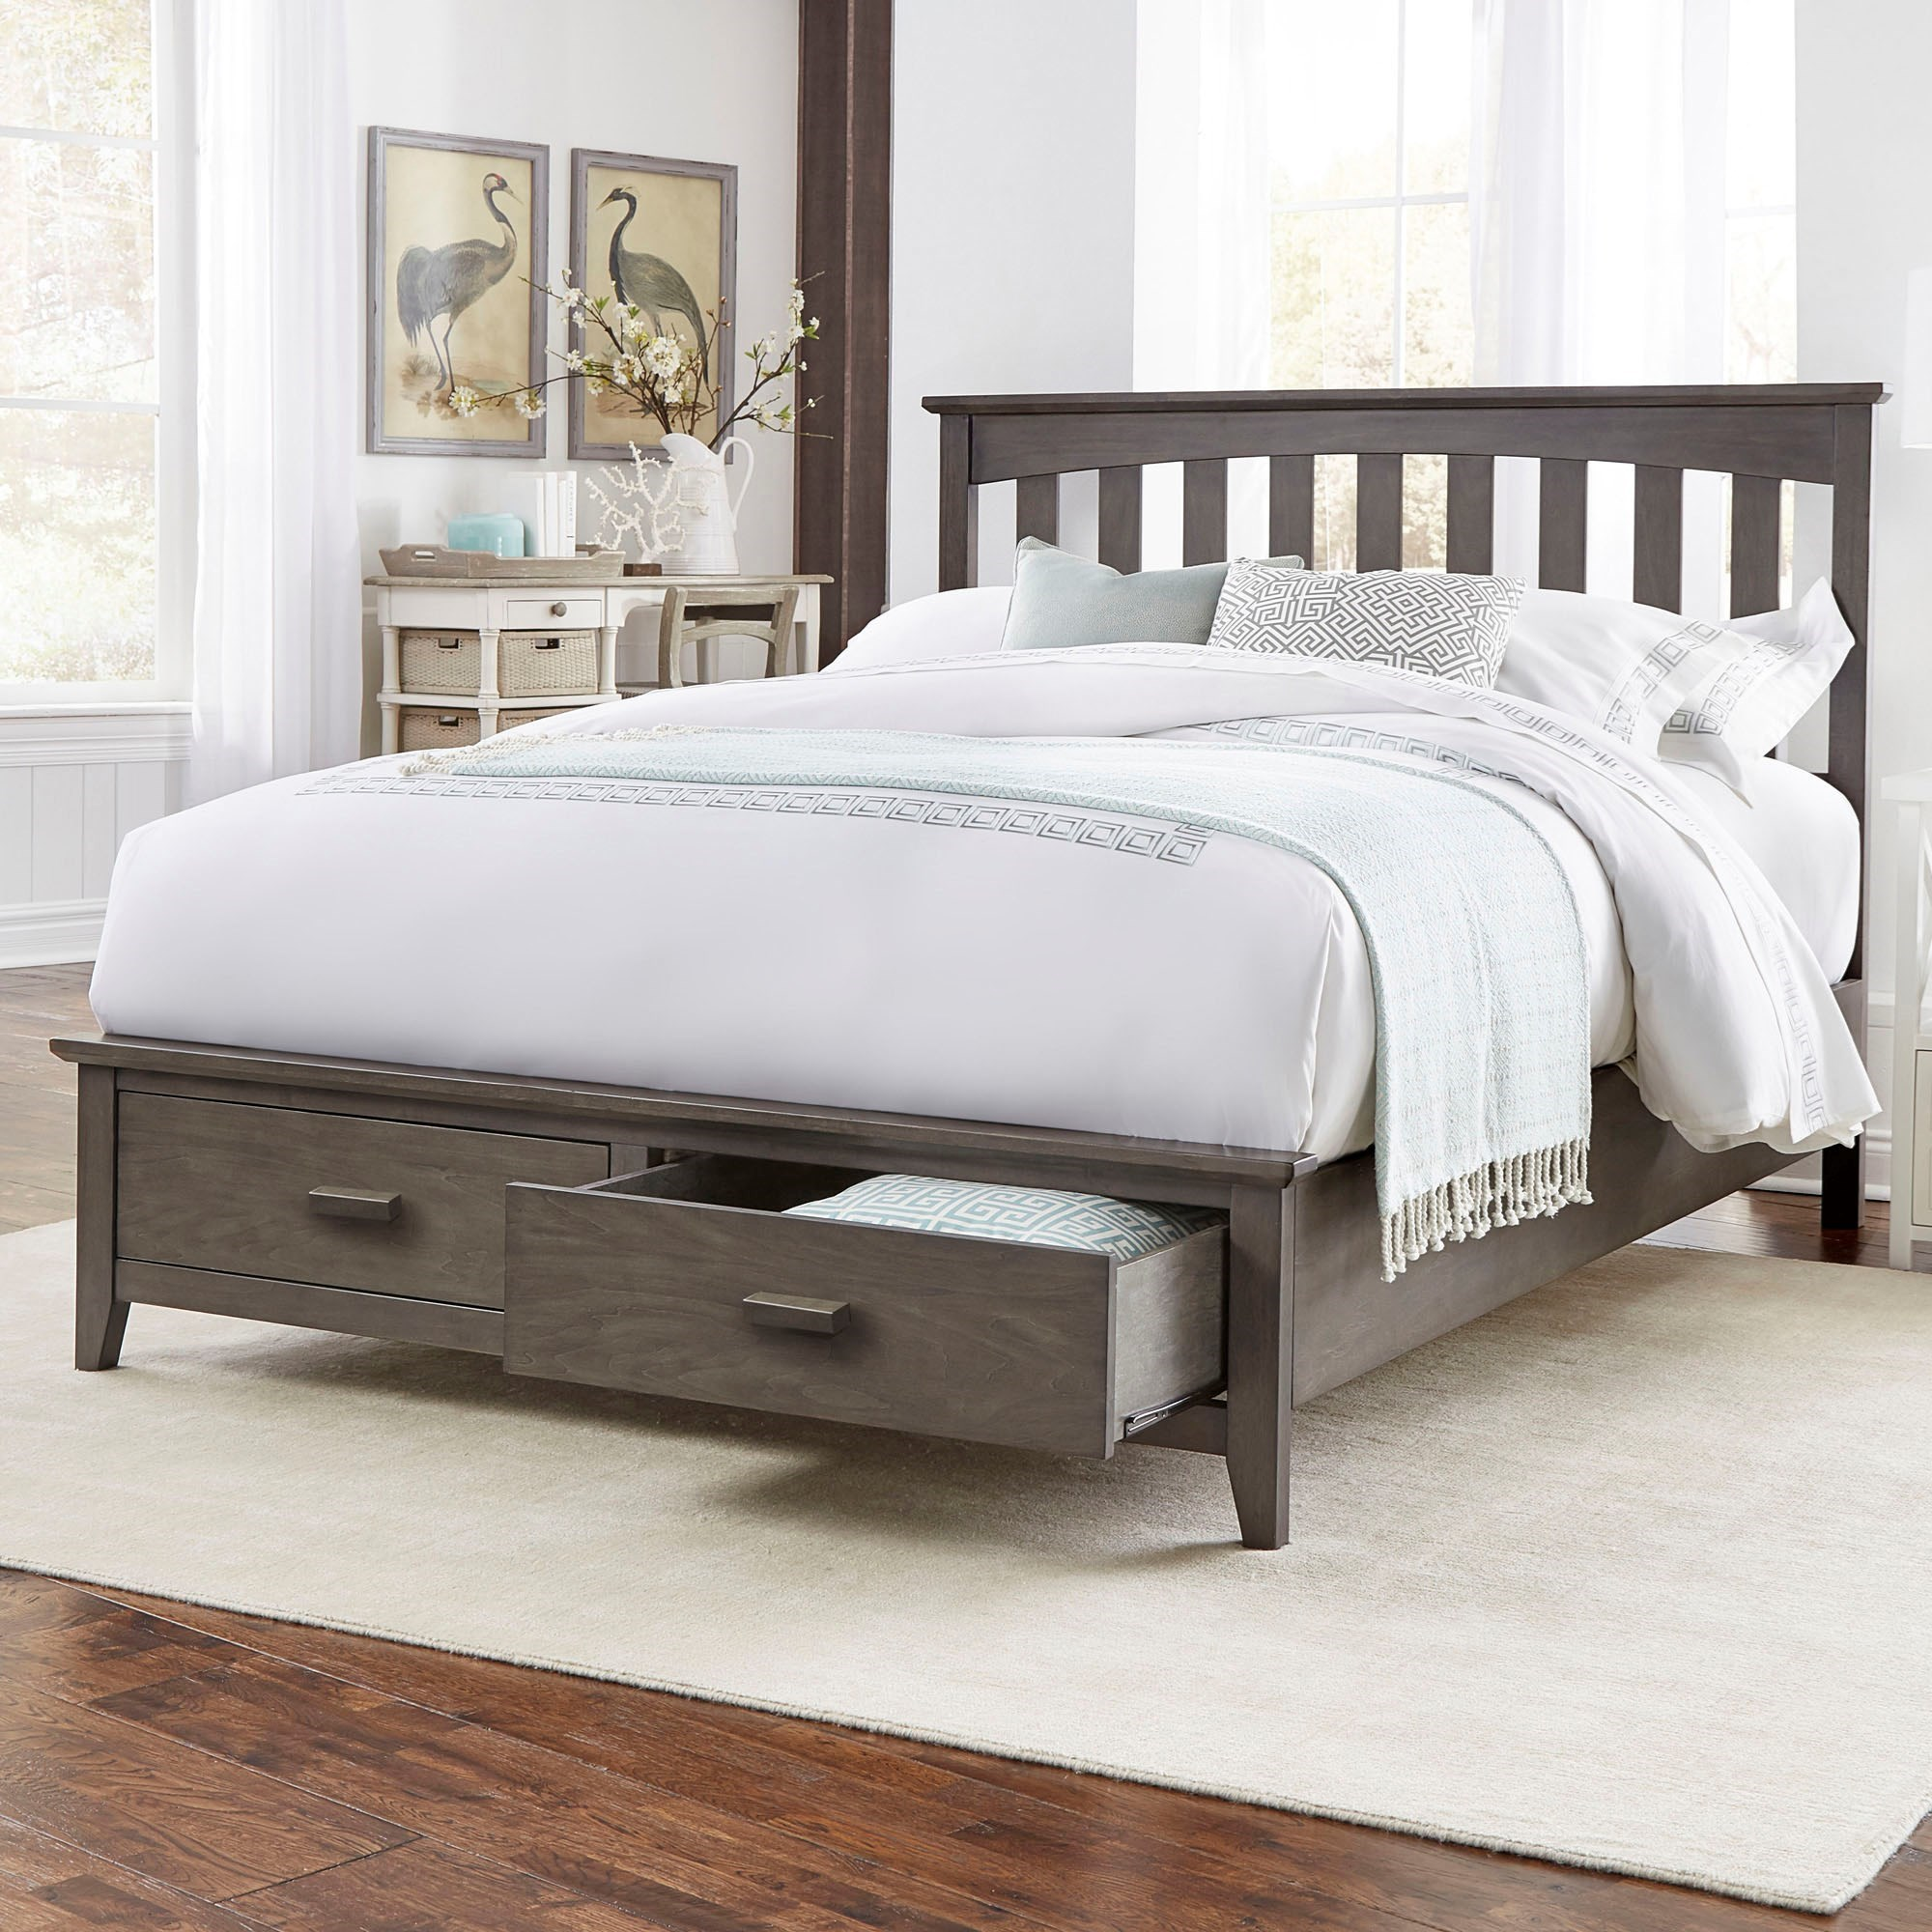 queen up frame storage bed rustic put to how